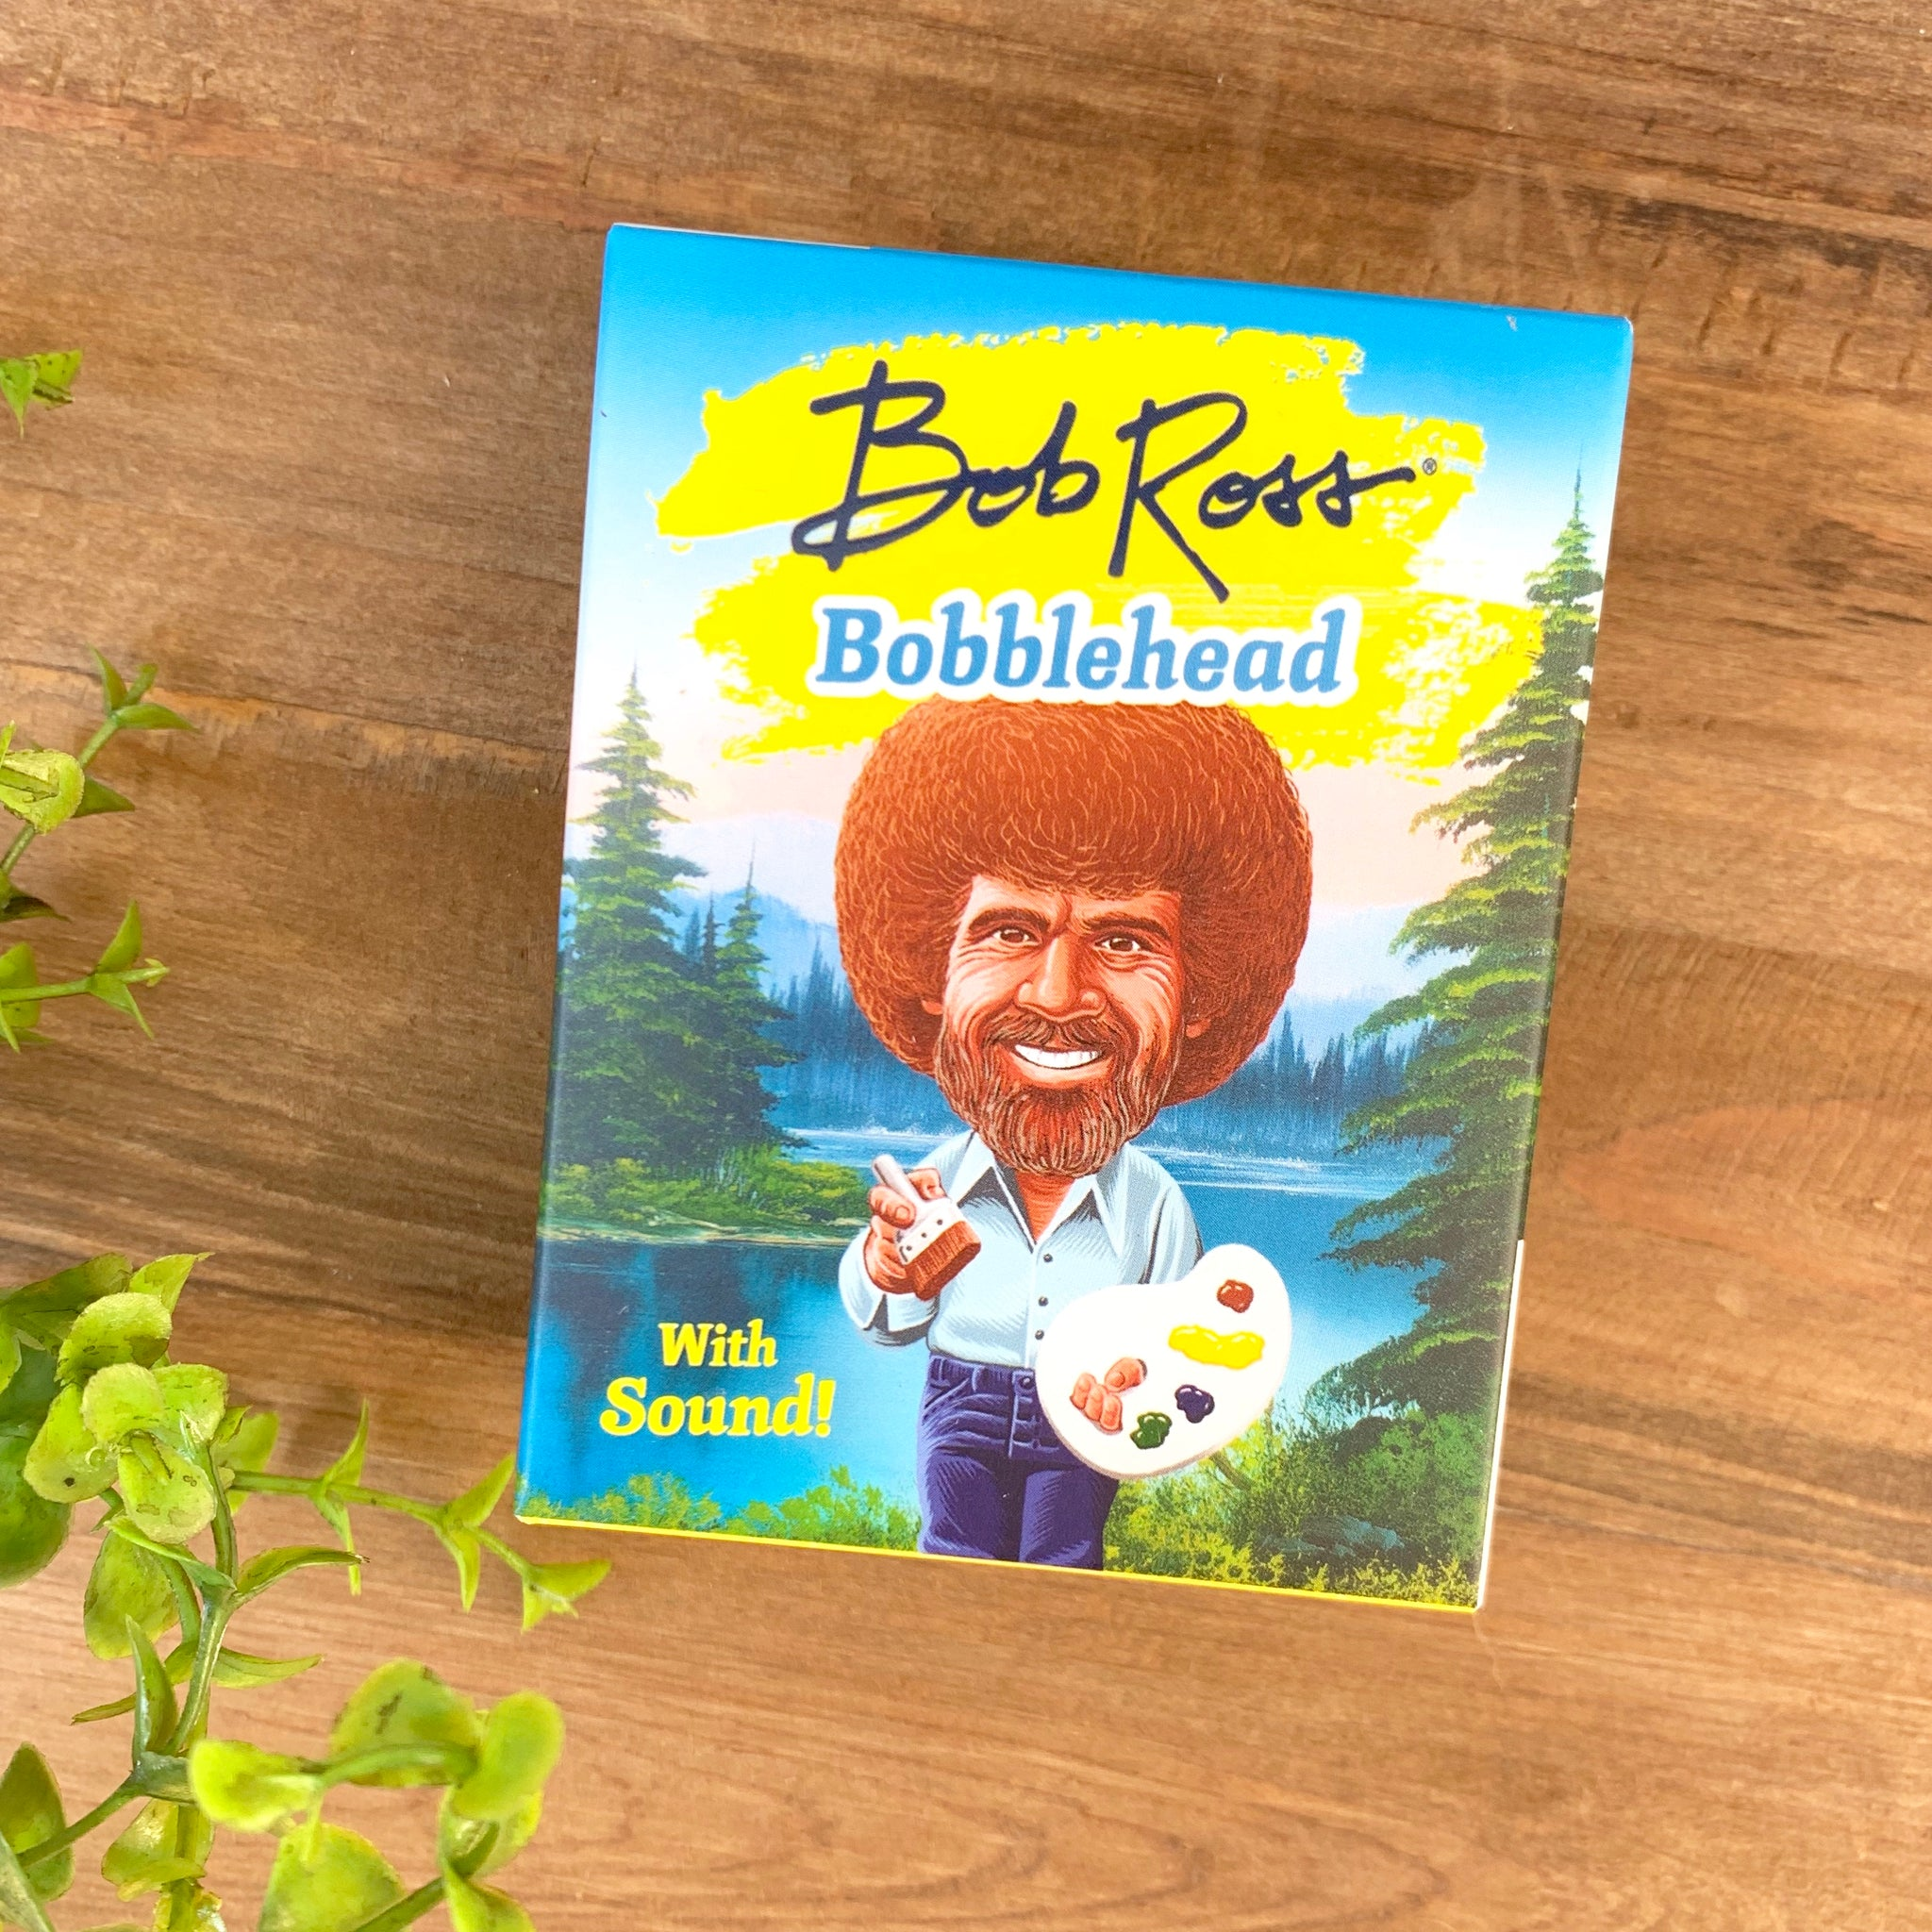 Bob Ross Bobblehead Box Mini